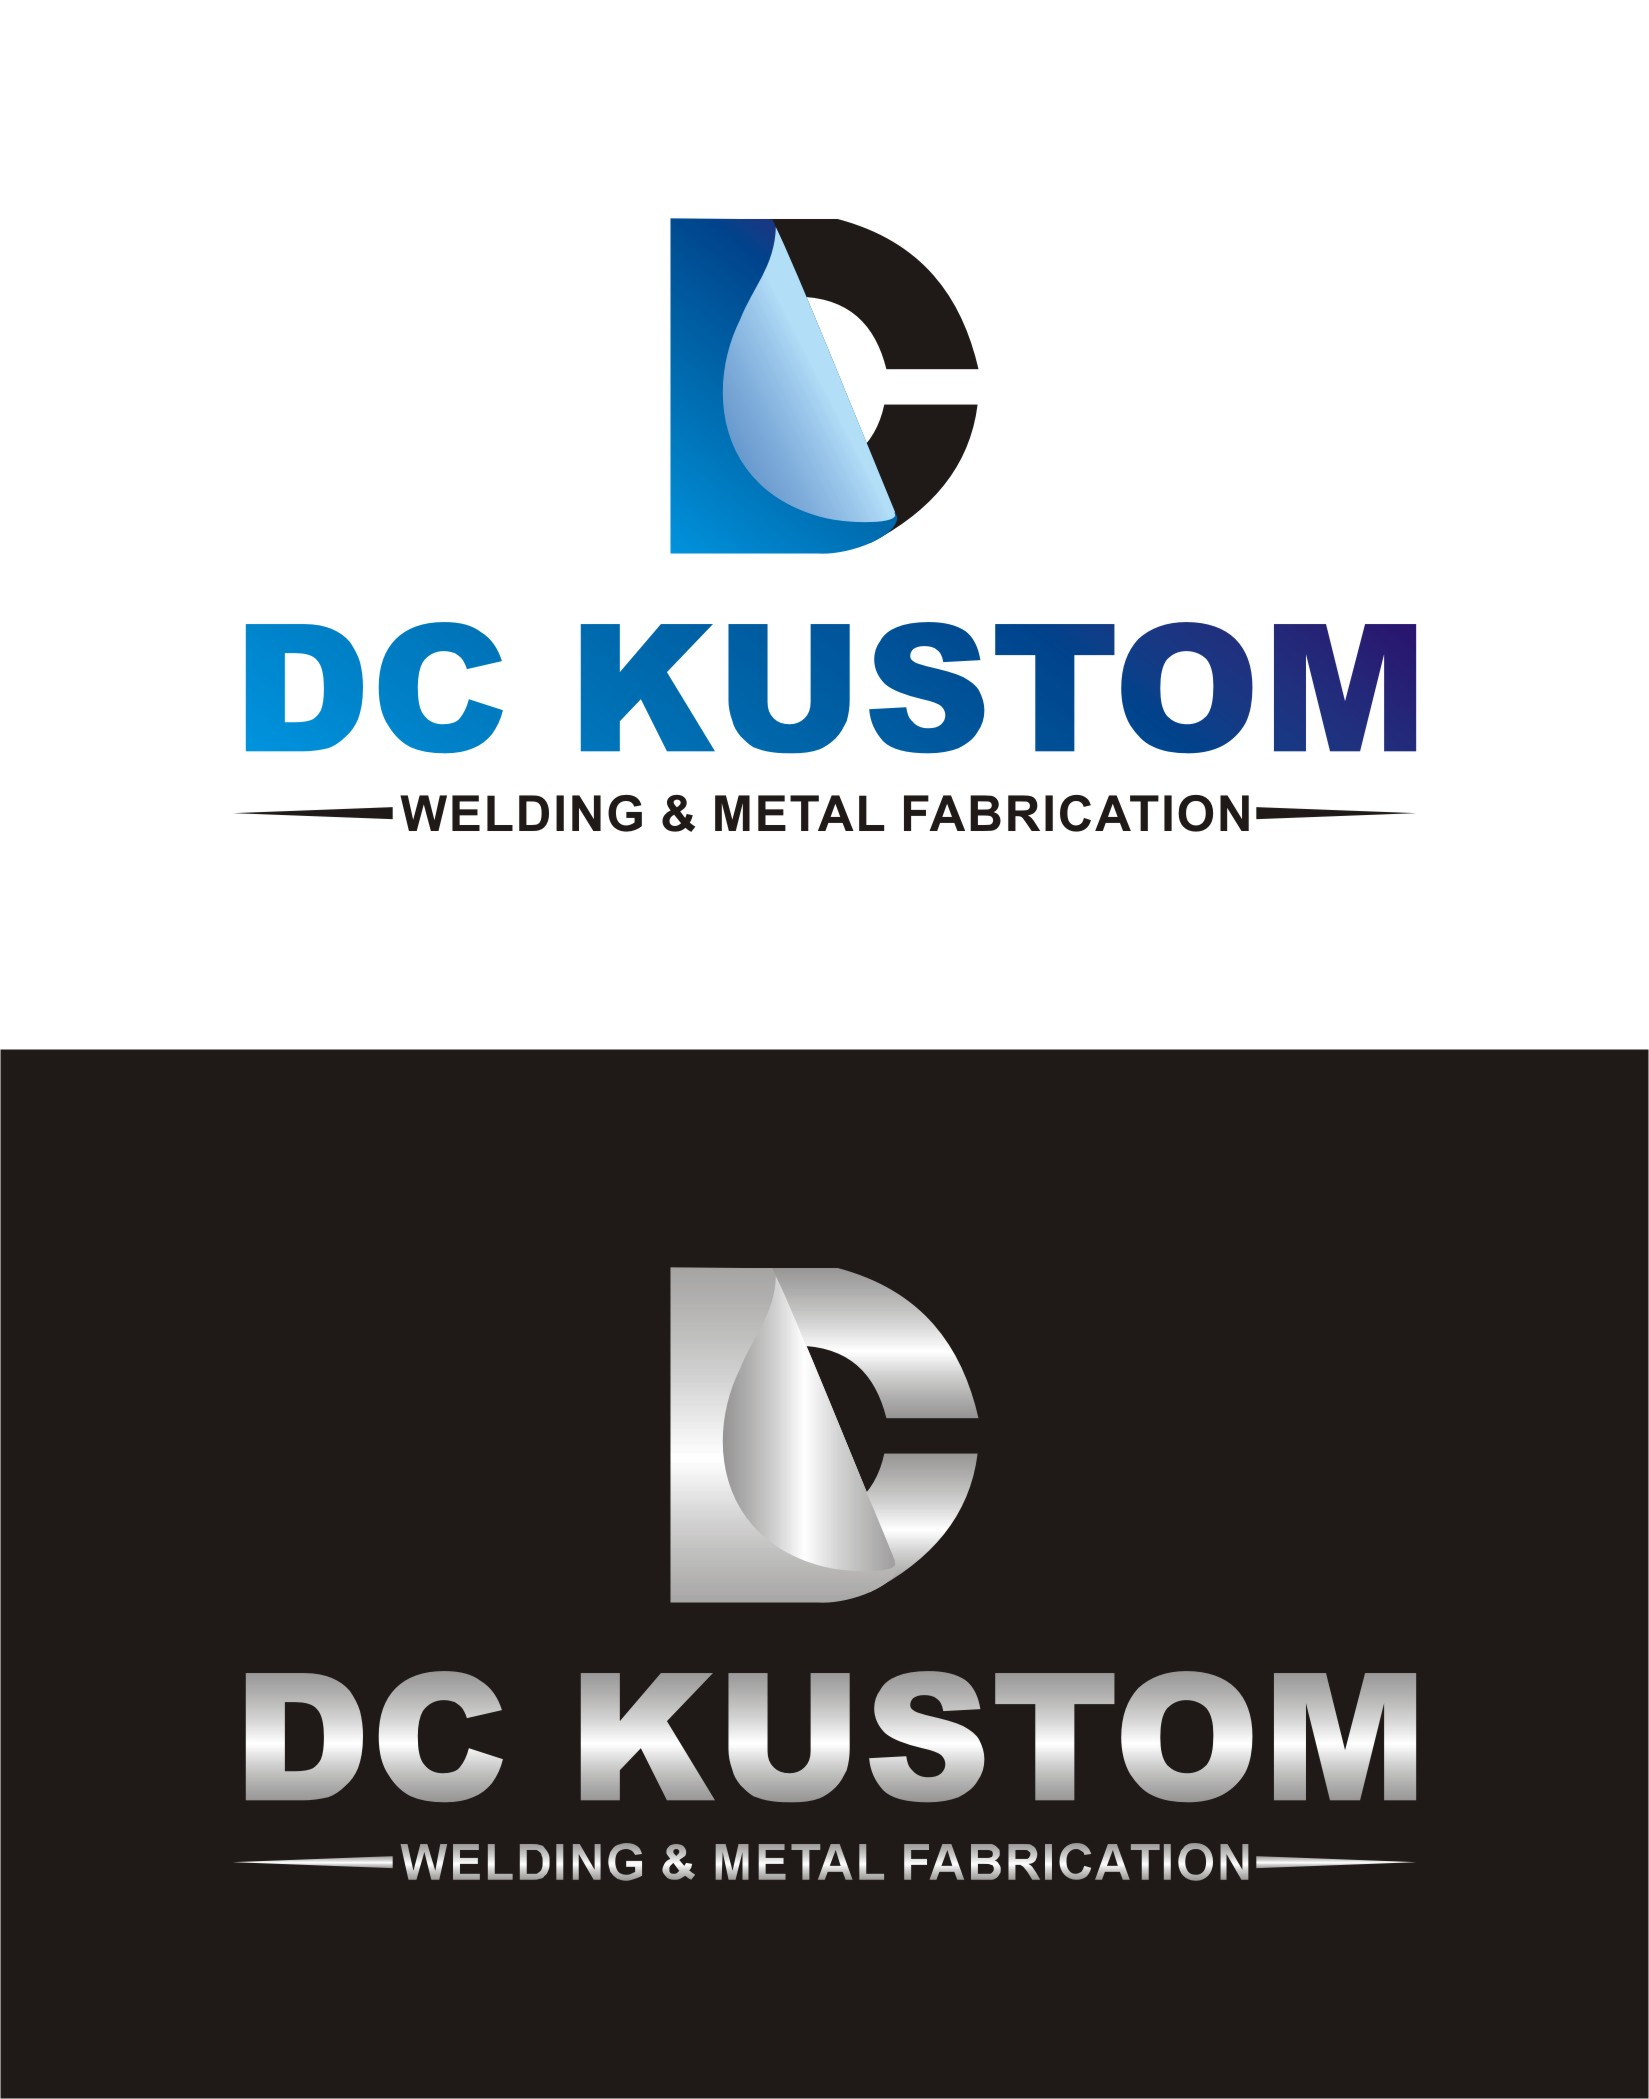 Logo Design by Spider Graphics - Entry No. 122 in the Logo Design Contest Imaginative Logo Design for DC KUSTOM WELDING & METAL FABRICATION.